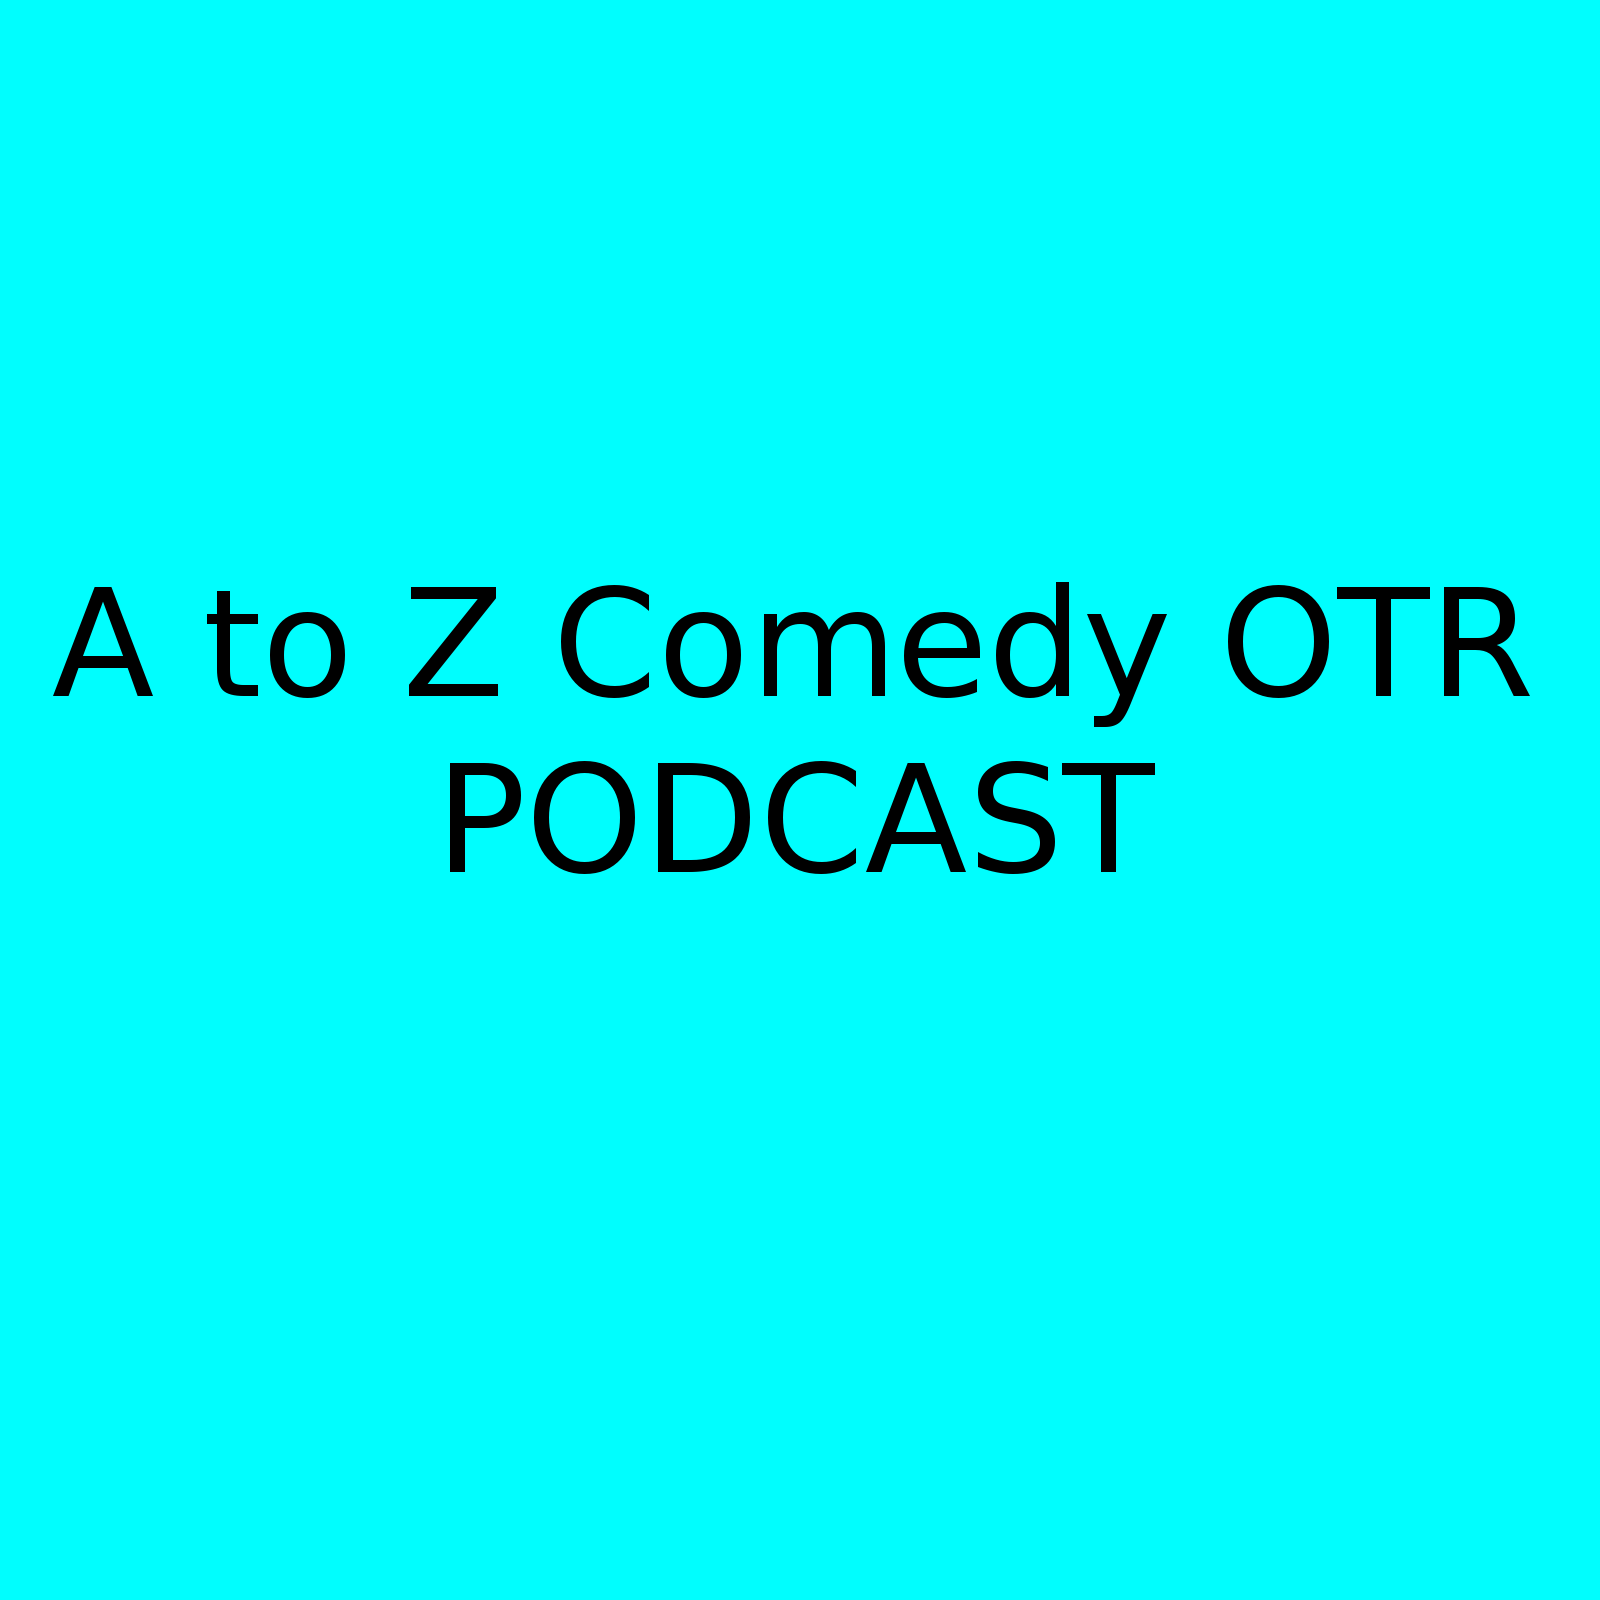 A to Z Comedy OTR Podcast Show #72